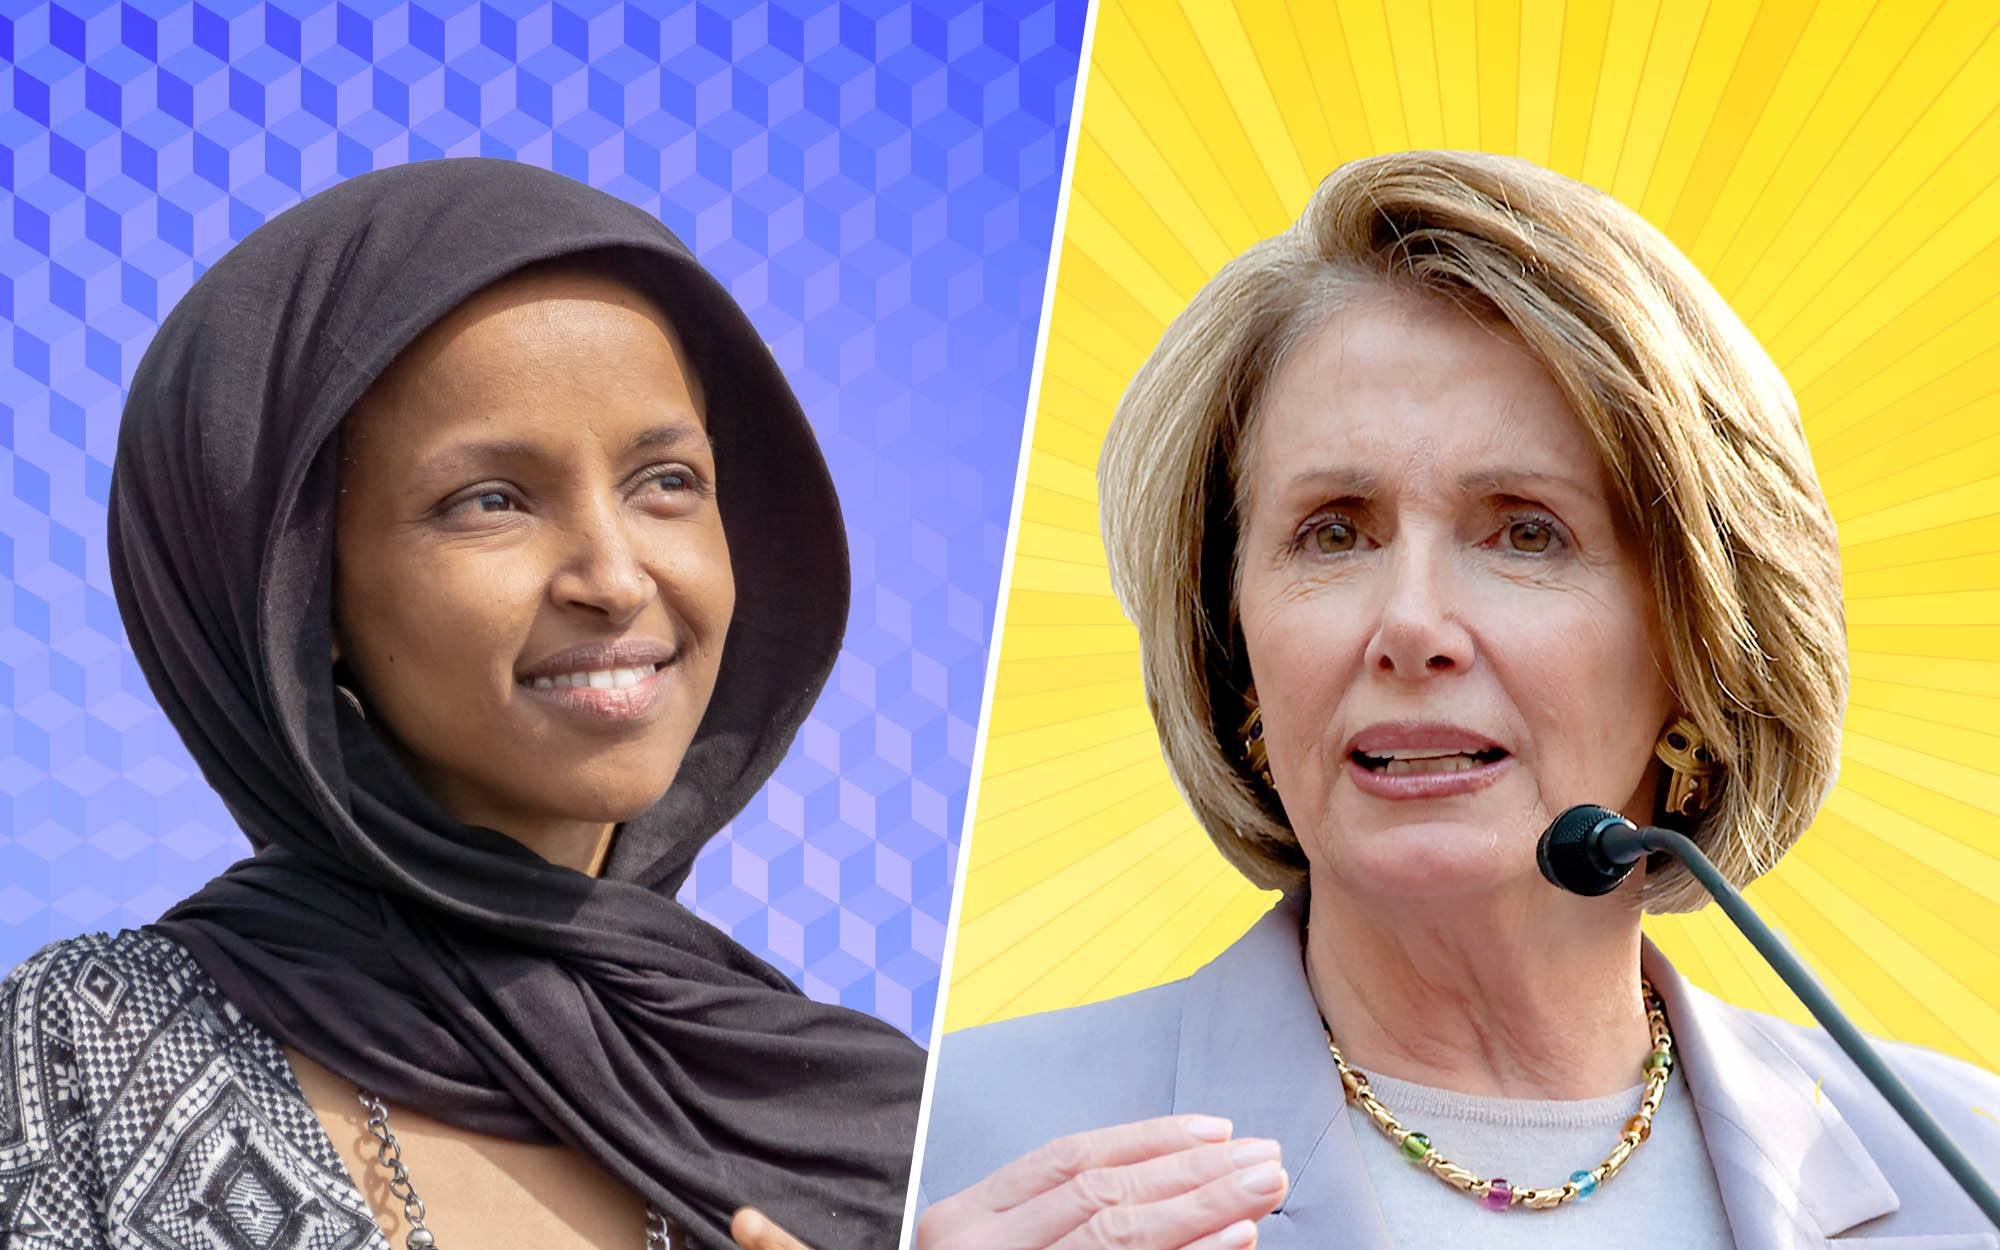 ilhan omar and nancy pelosi taunt president trump with their pictures from africa